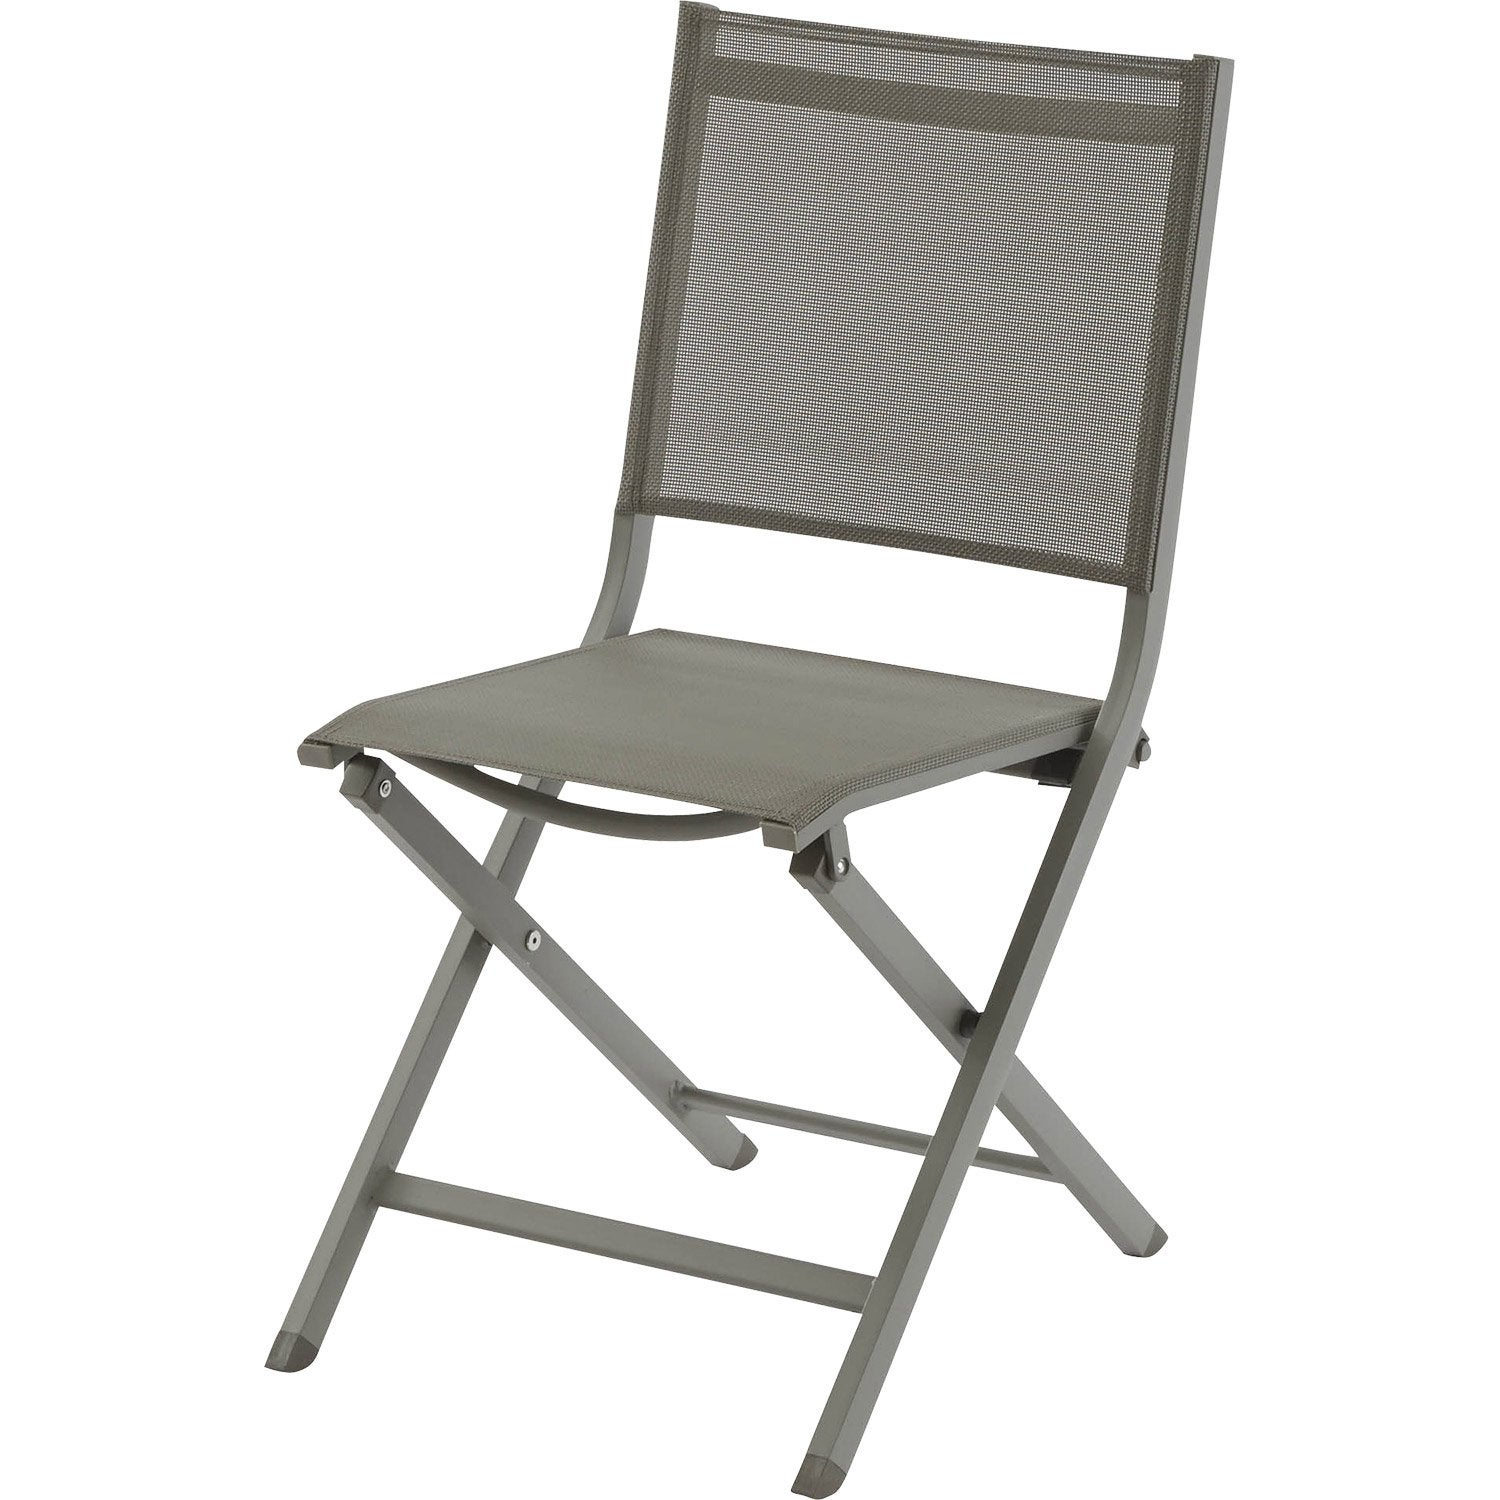 Chaise de jardin en aluminium thema taupe leroy merlin for Chaise longue leroy merlin